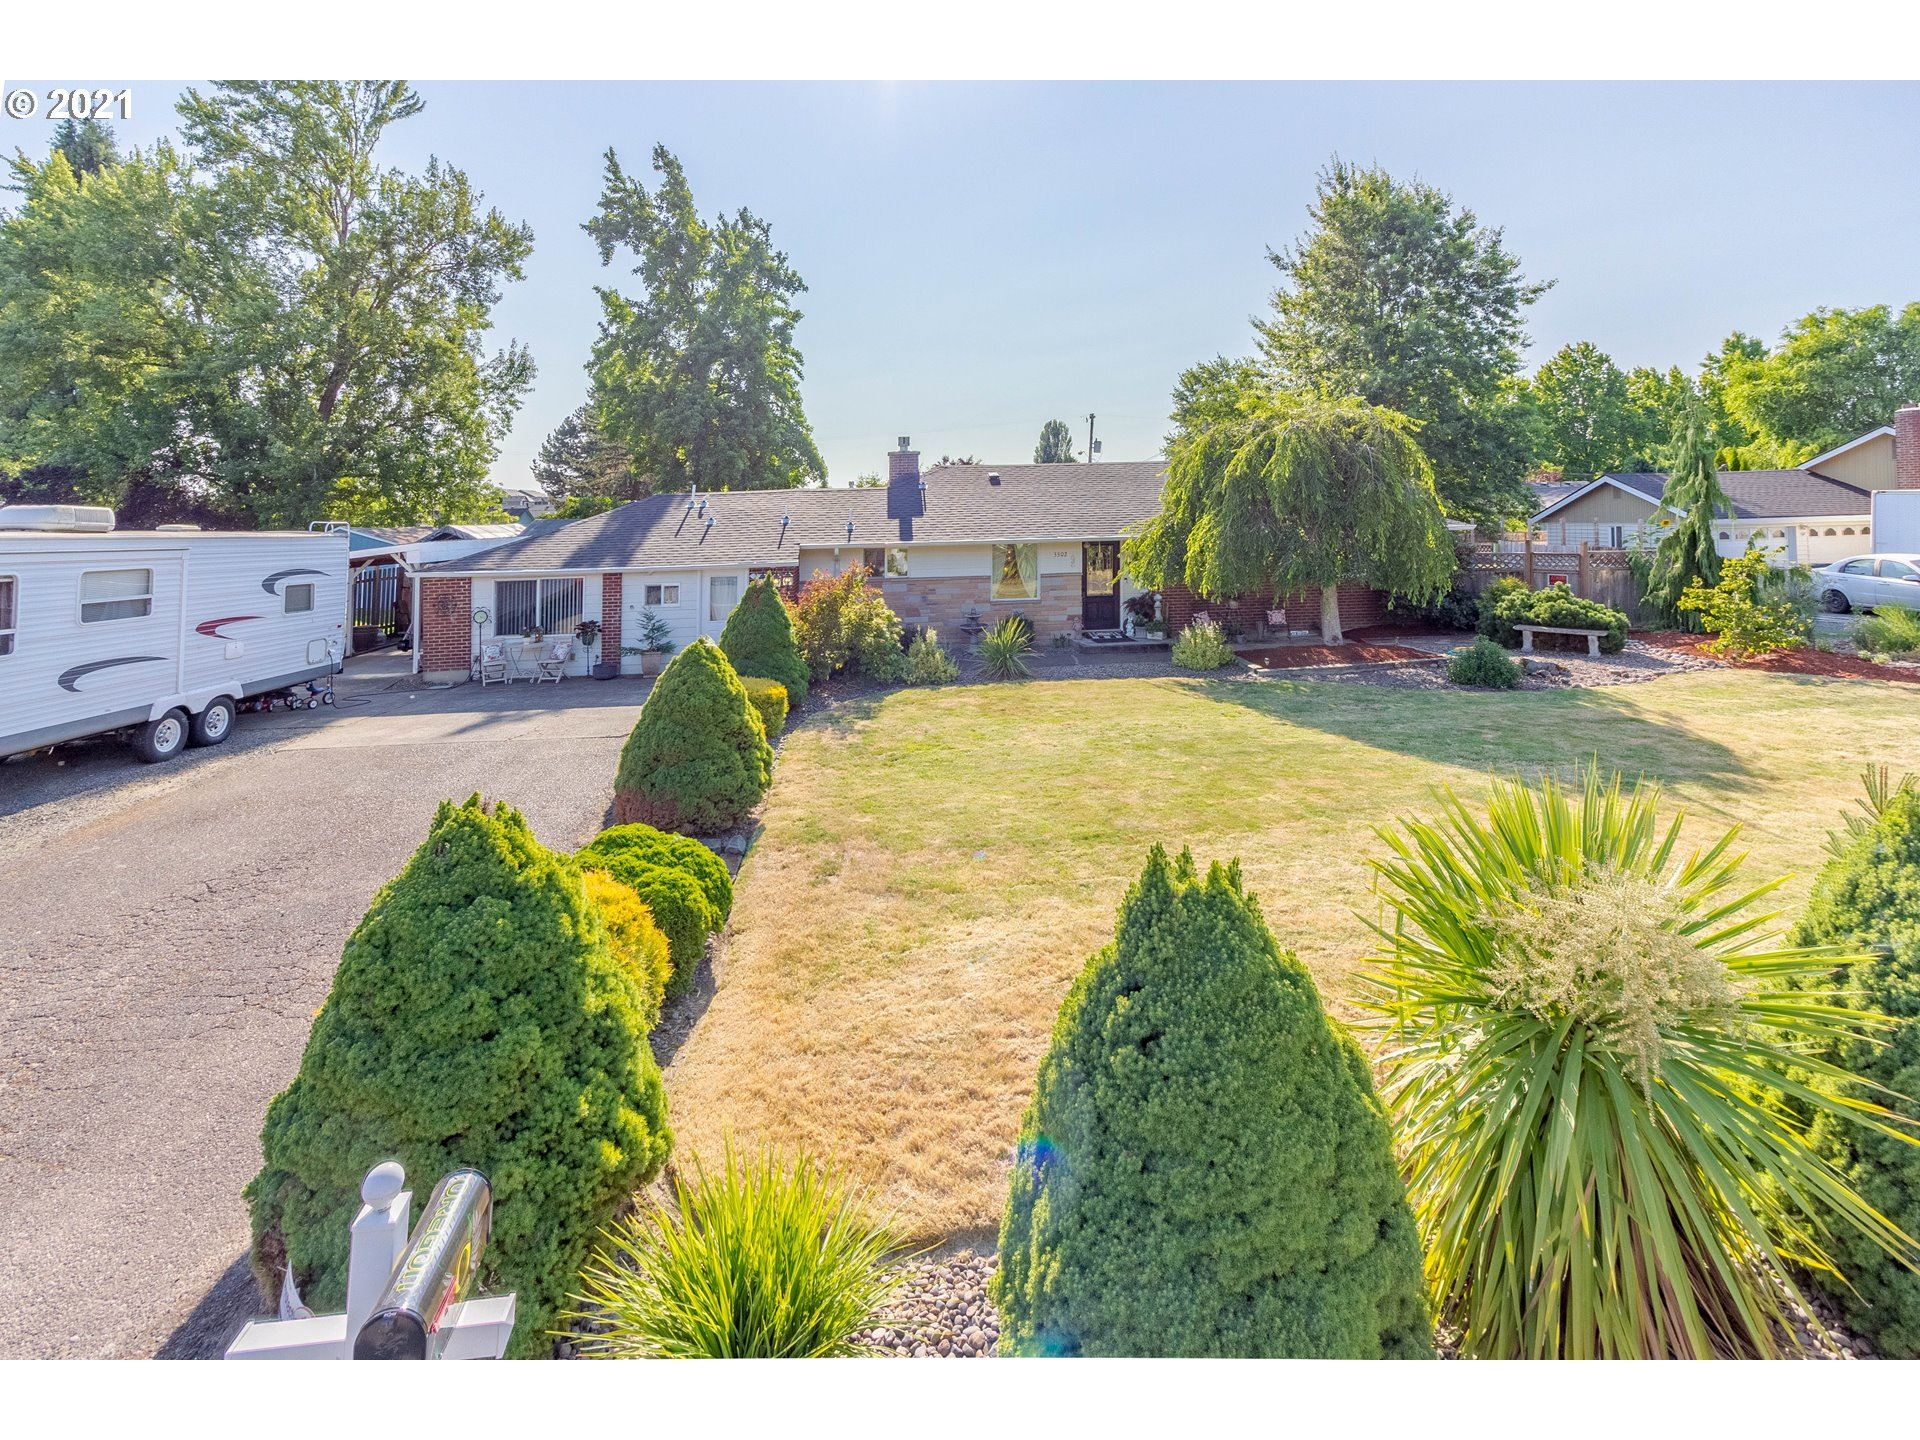 3302 PINE ST, Albany, OR 97322 - MLS#: 21644690